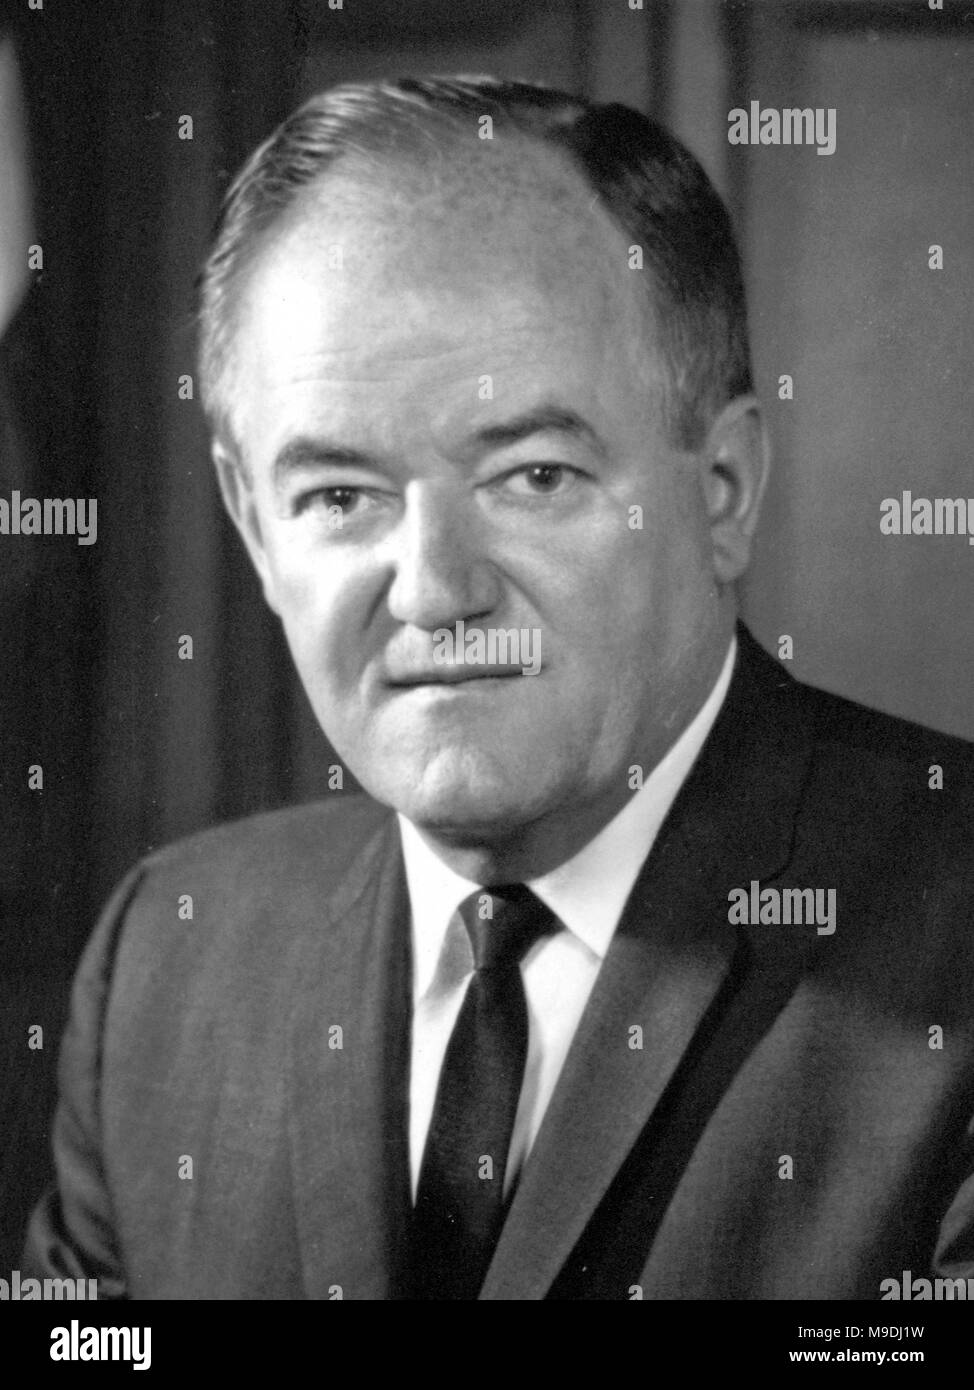 Hubert Humphrey, Hubert Horatio Humphrey Jr. (1911 – 1978) American politician and 38th Vice President of the United States from 1965 to 1969. - Stock Image